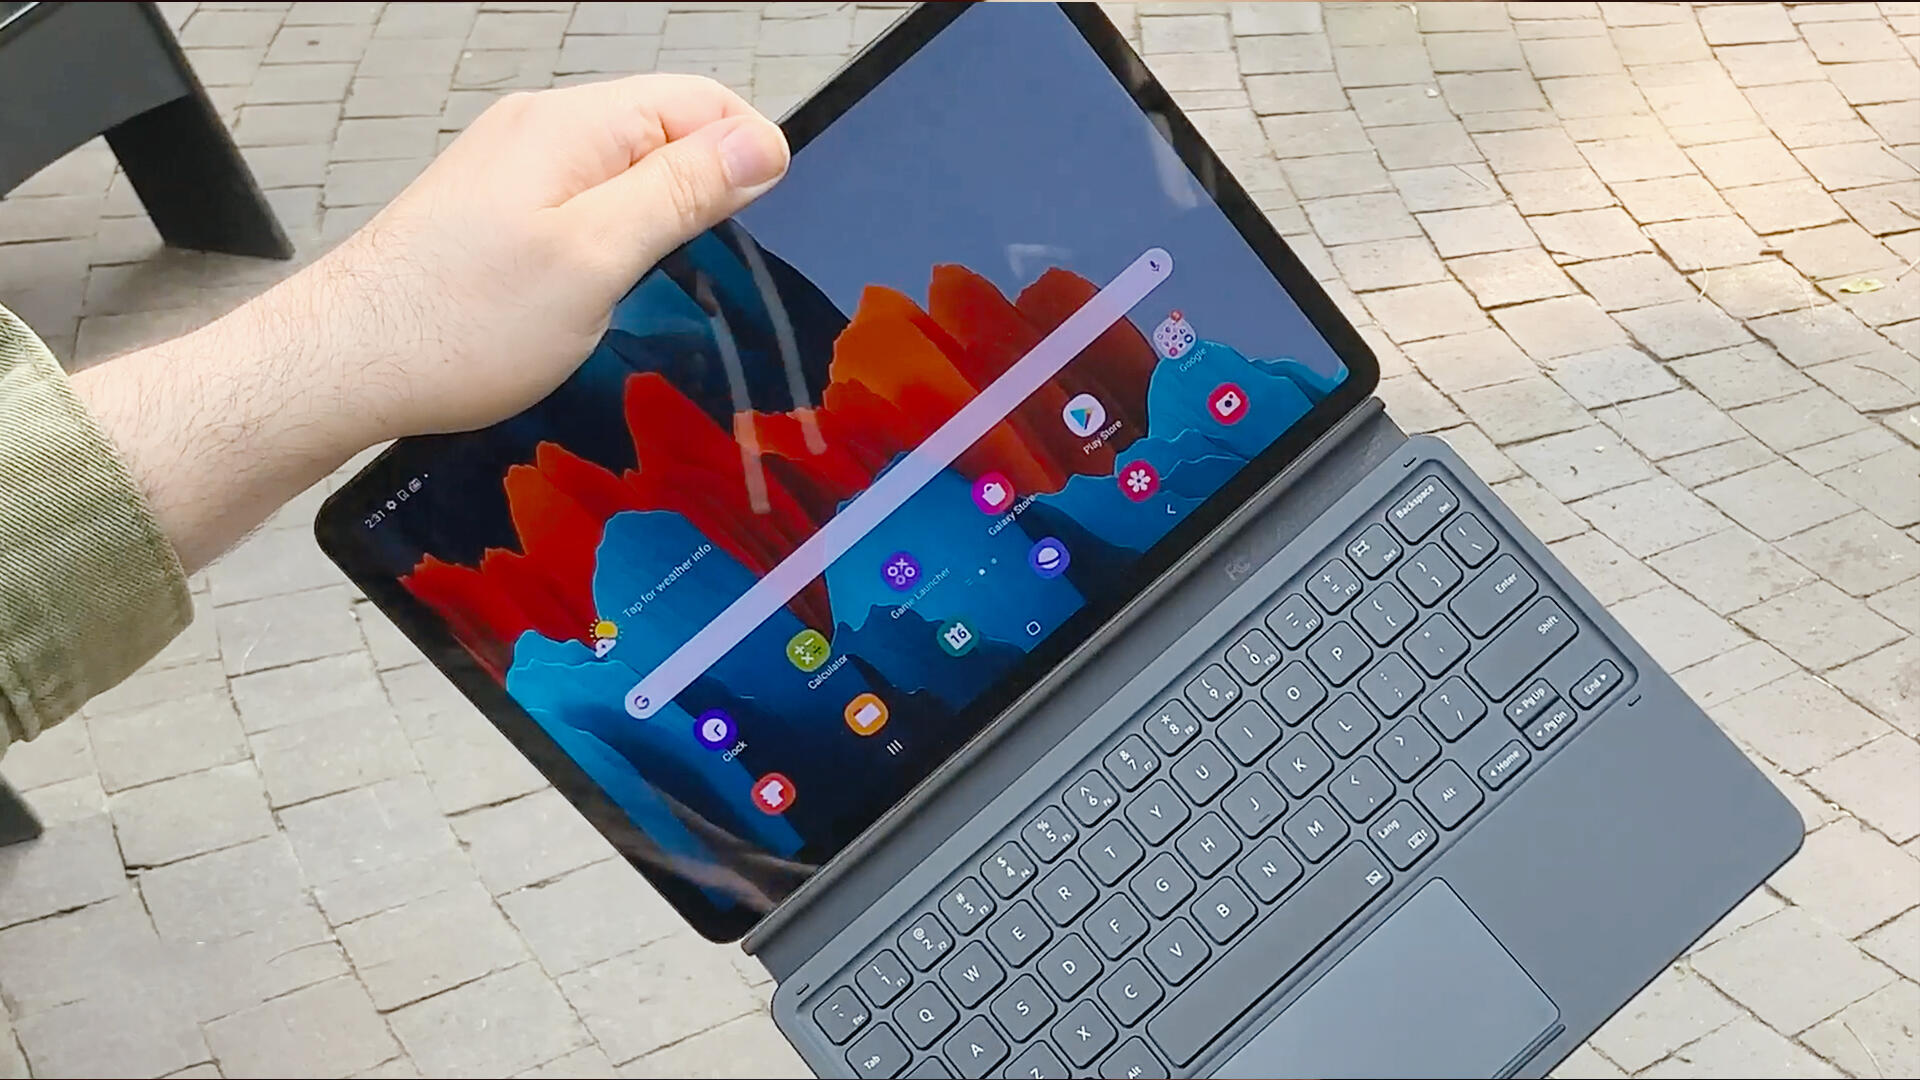 Video: Samsung's Galaxy Tab S7 tablet wants you to work and play